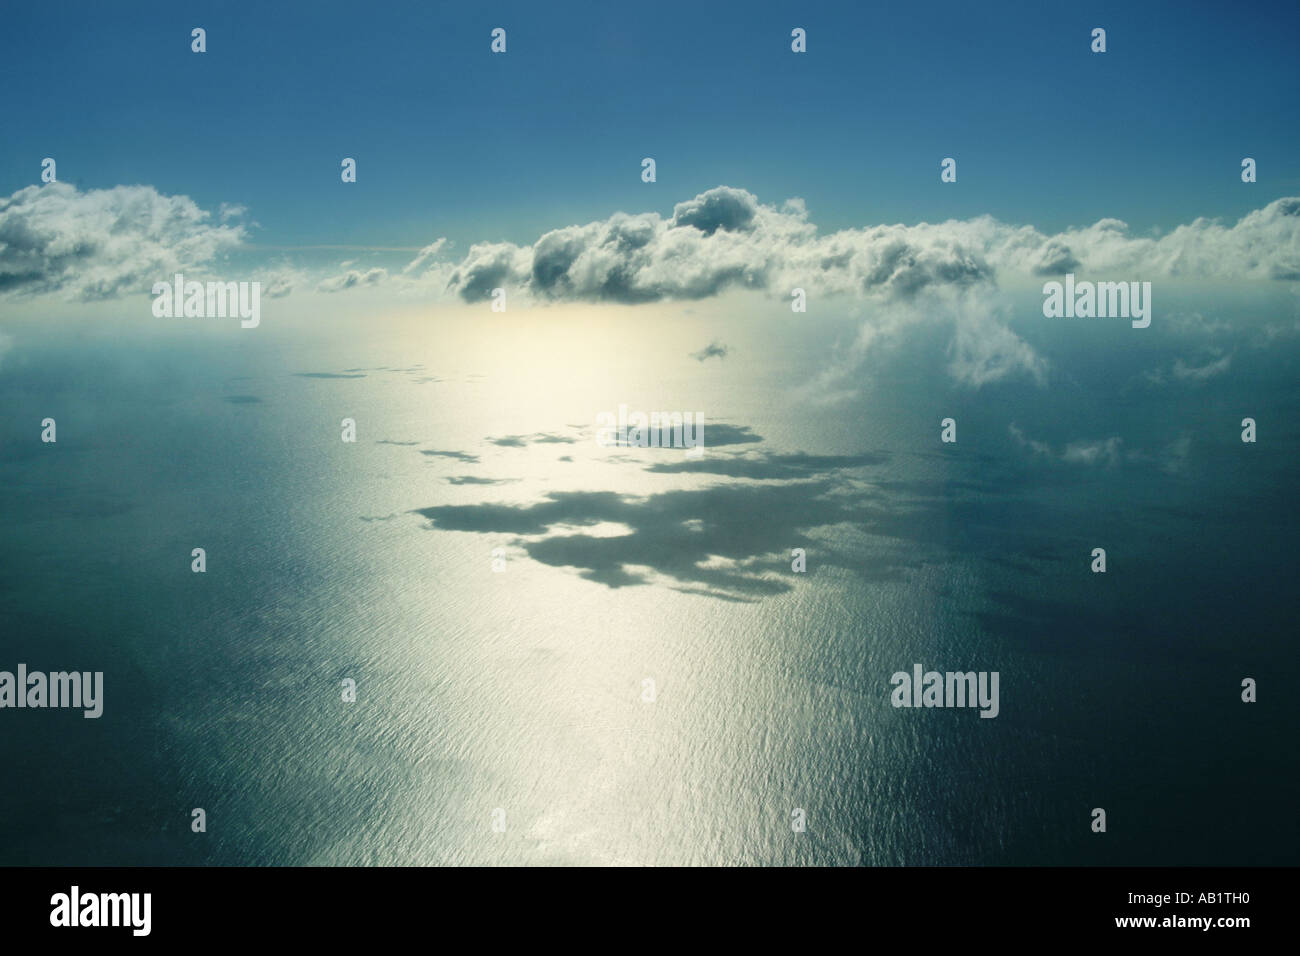 view of clouds from an aeroplane - Stock Image